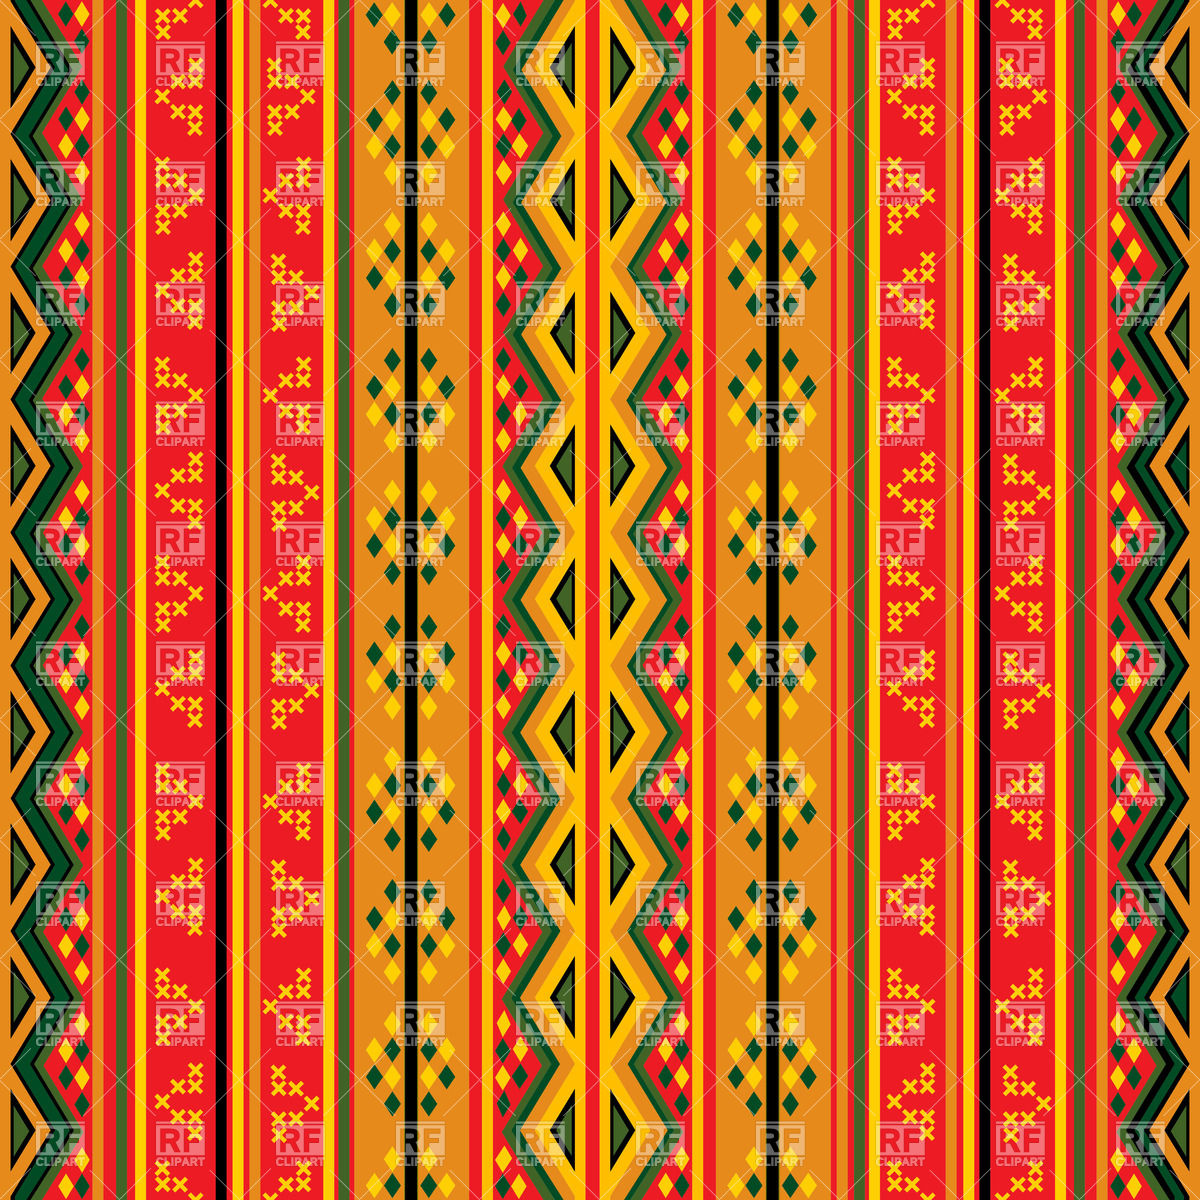 Seamless ethnic geaometric pattern Vector Image #31786.